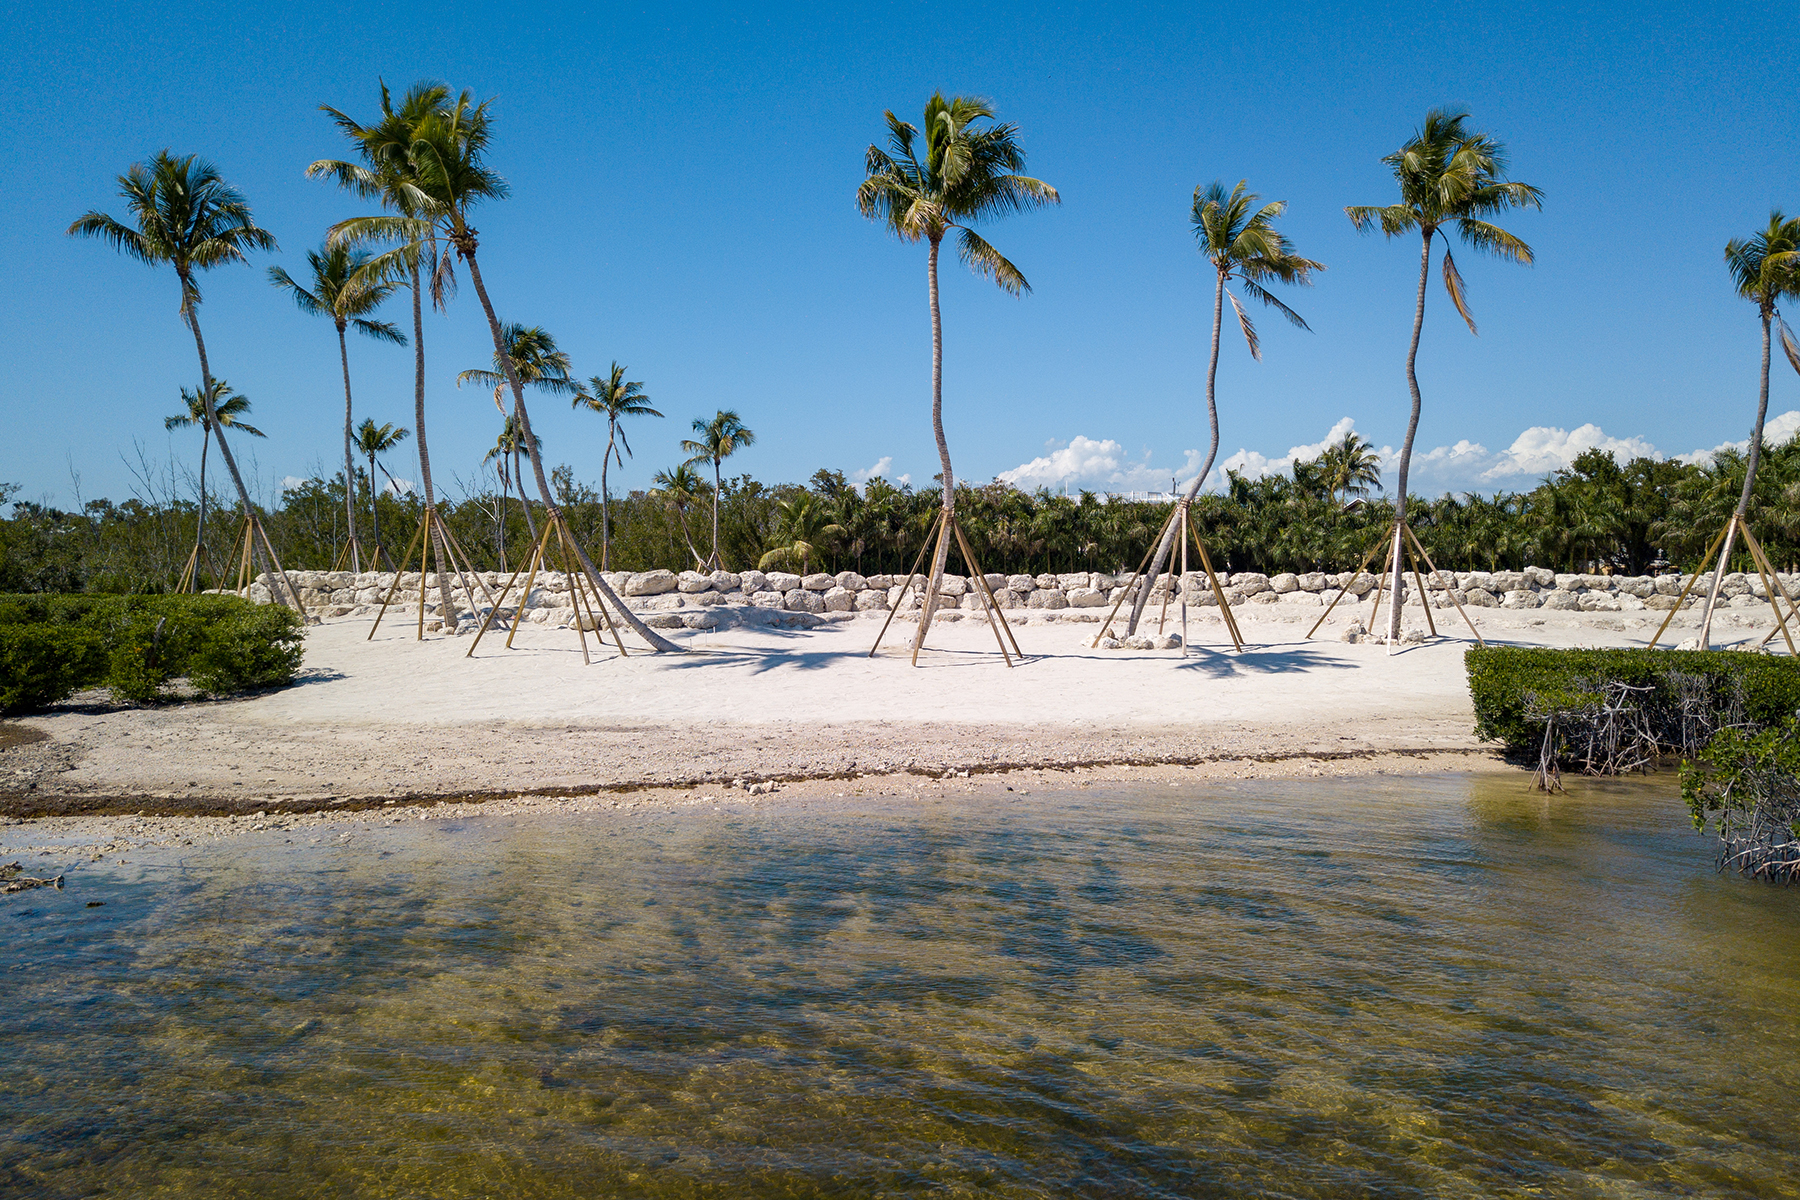 Single Family Homes for Active at 0 South Drive, Islamorada, FL 0 South Drive Islamorada, Florida 33036 United States